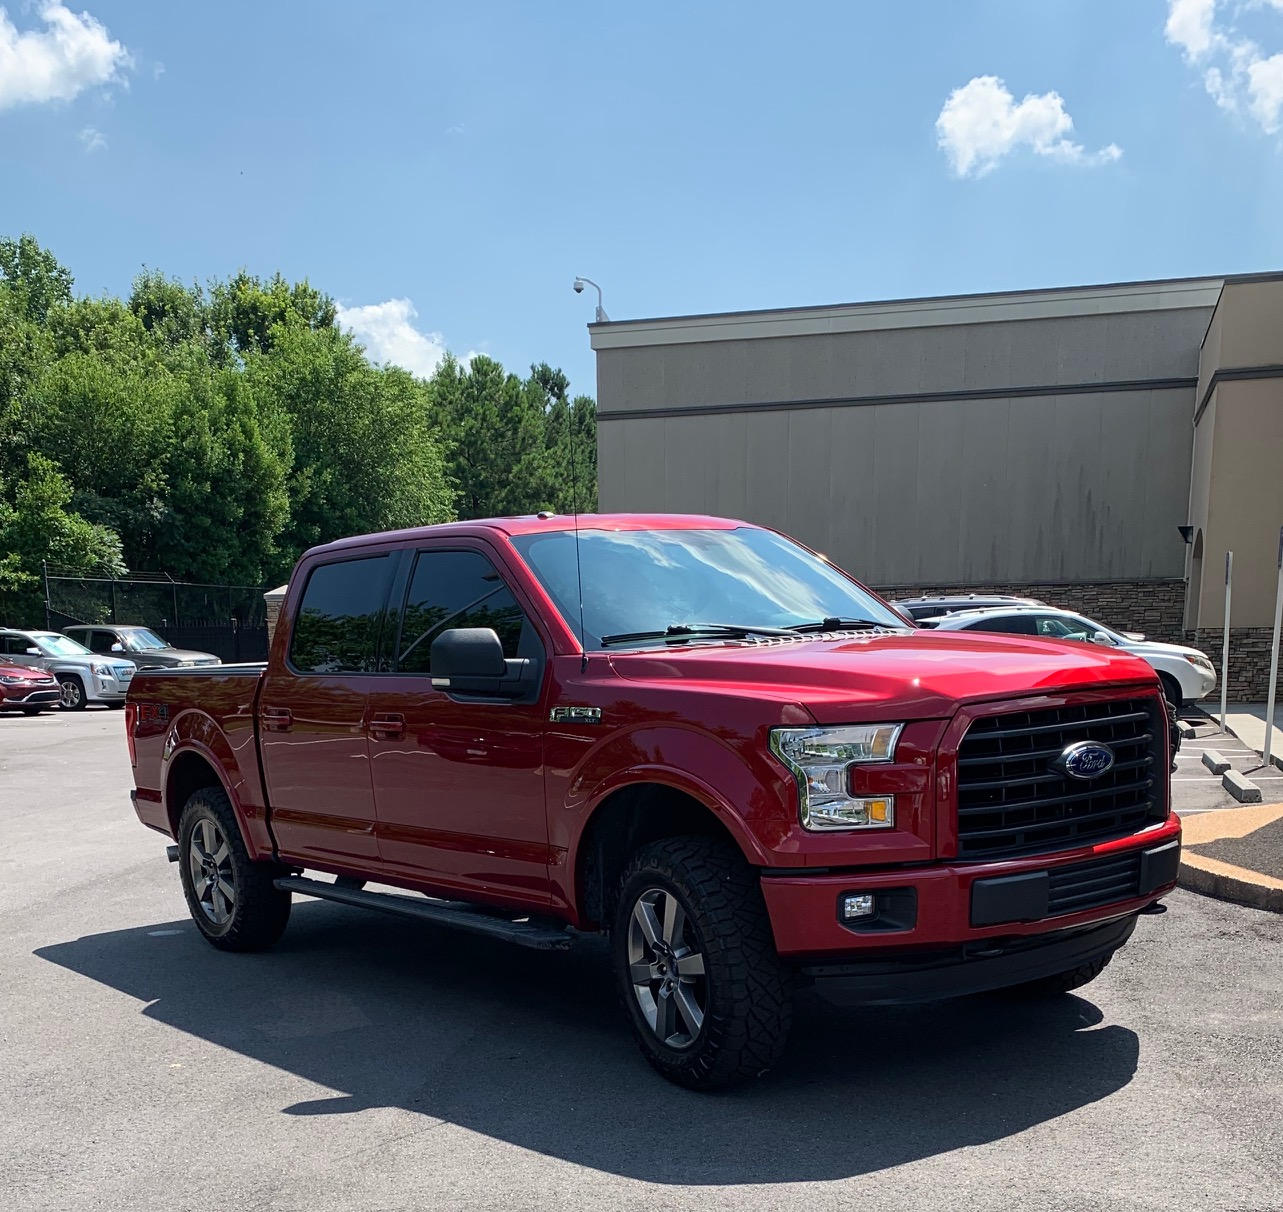 Ford F-150 - after - side view.jpg